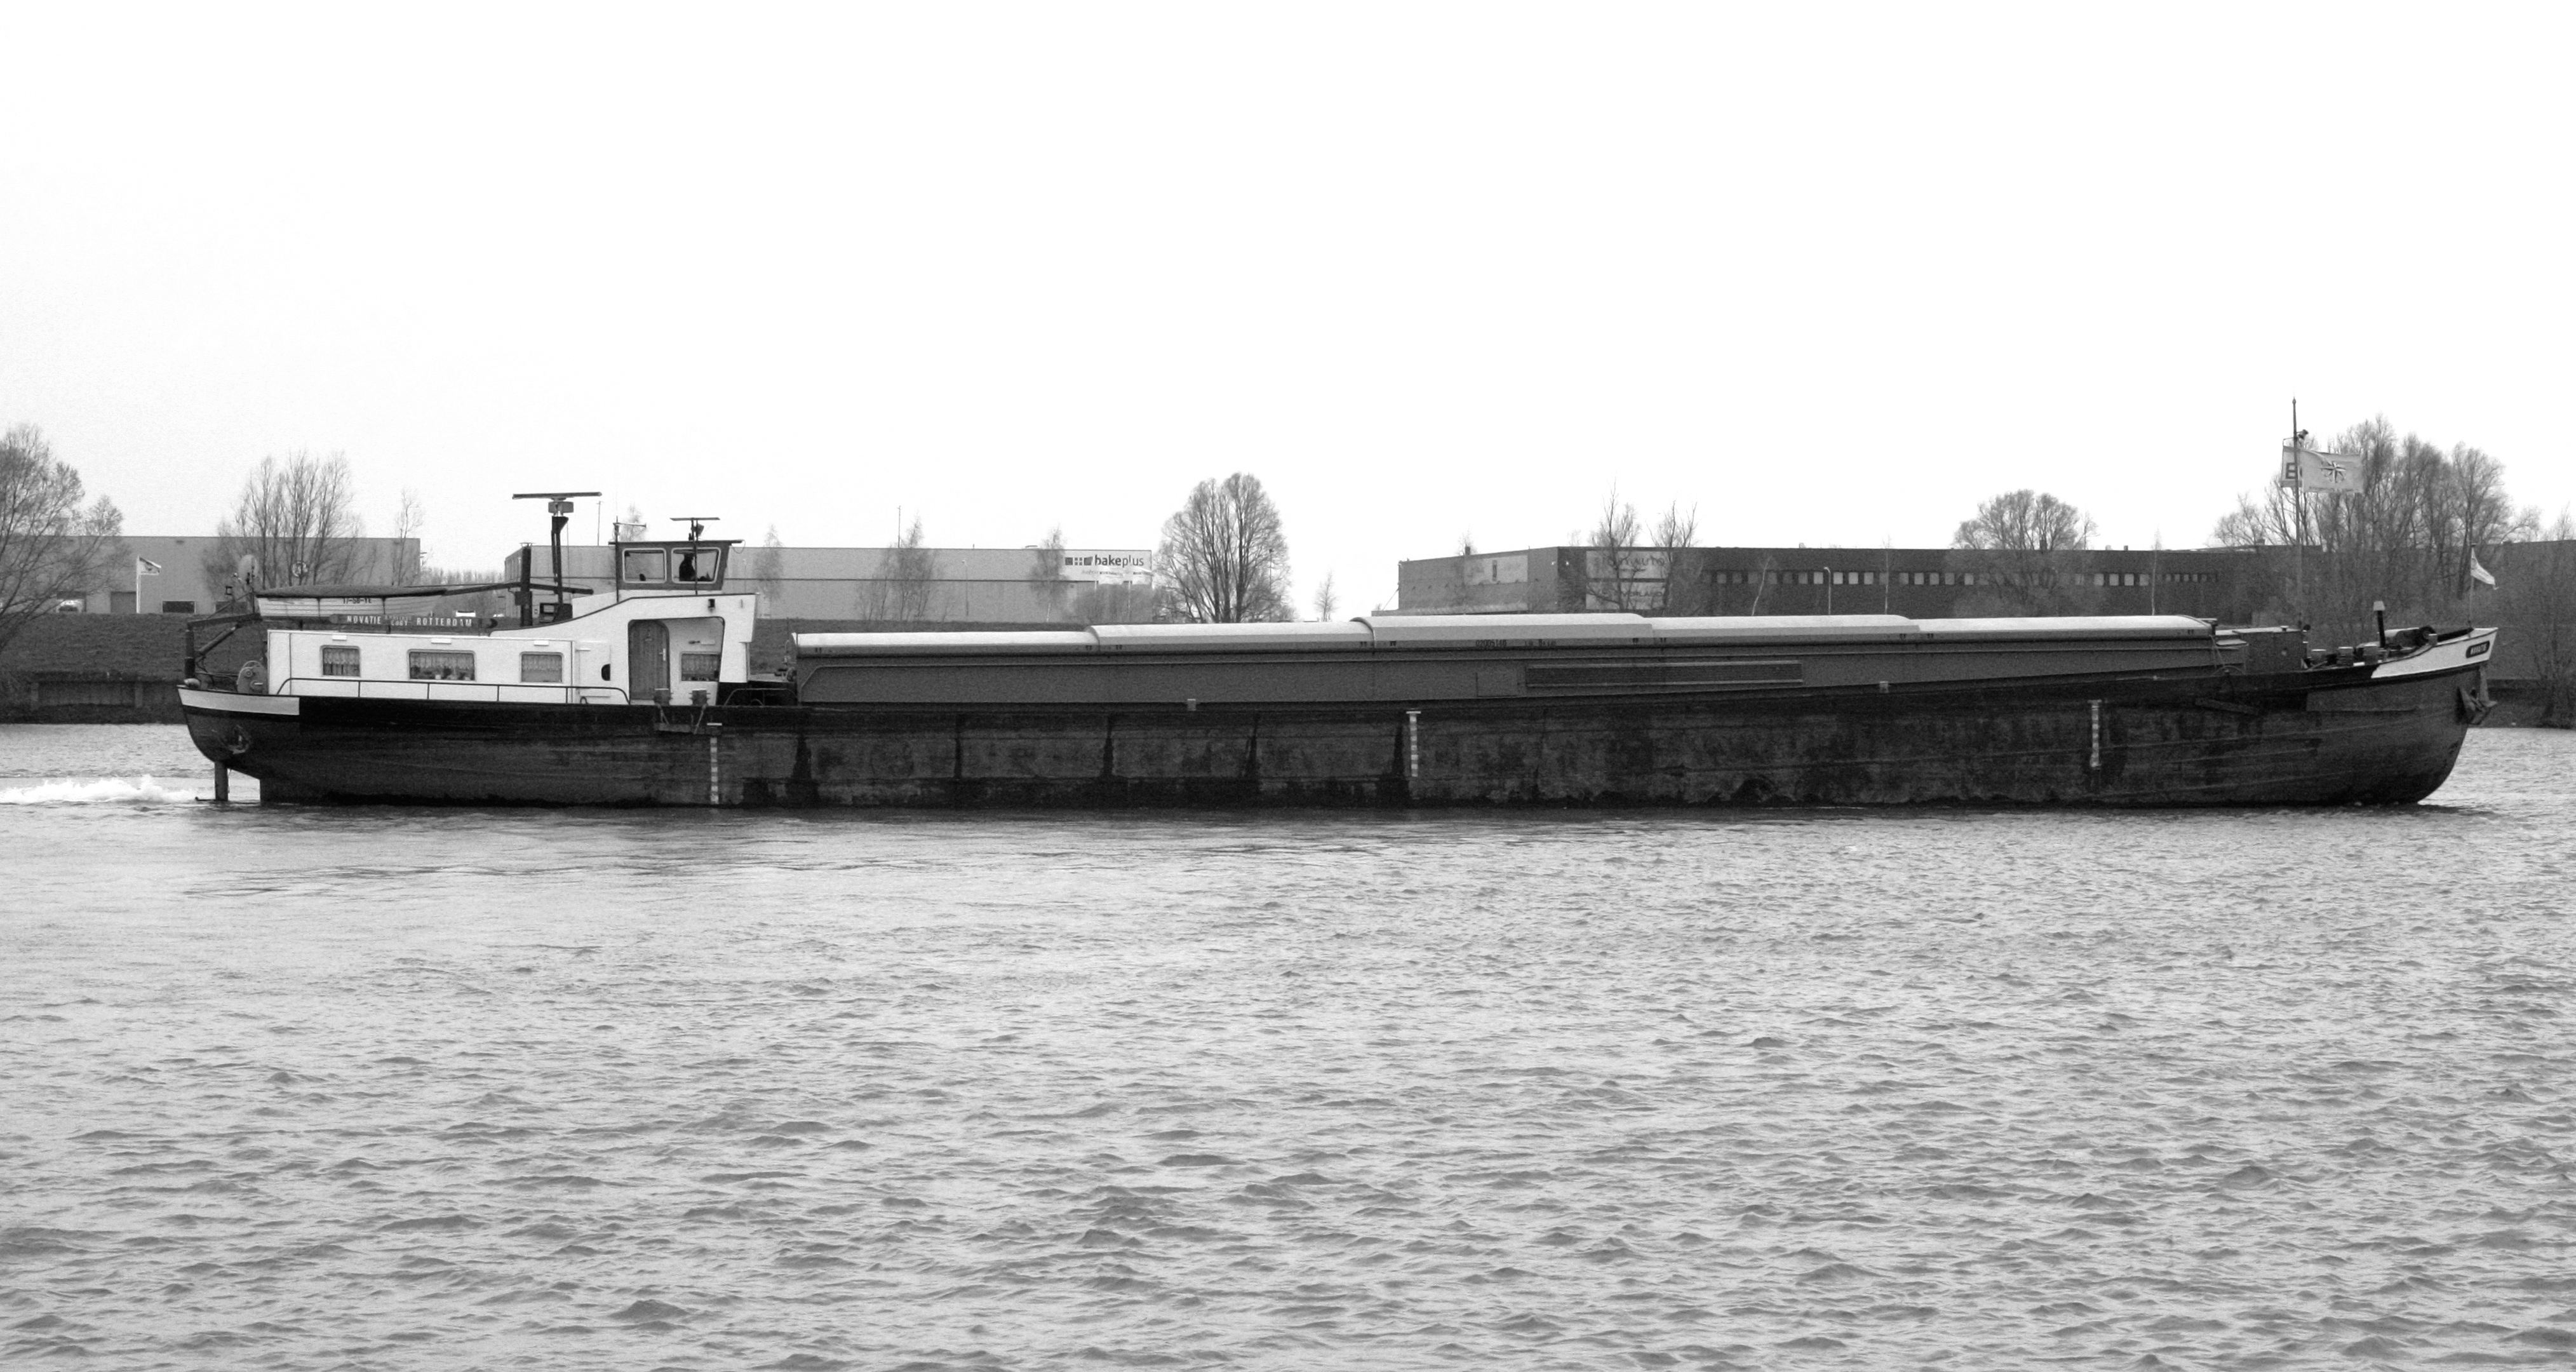 The De Novatie before it was converted into a houseboat